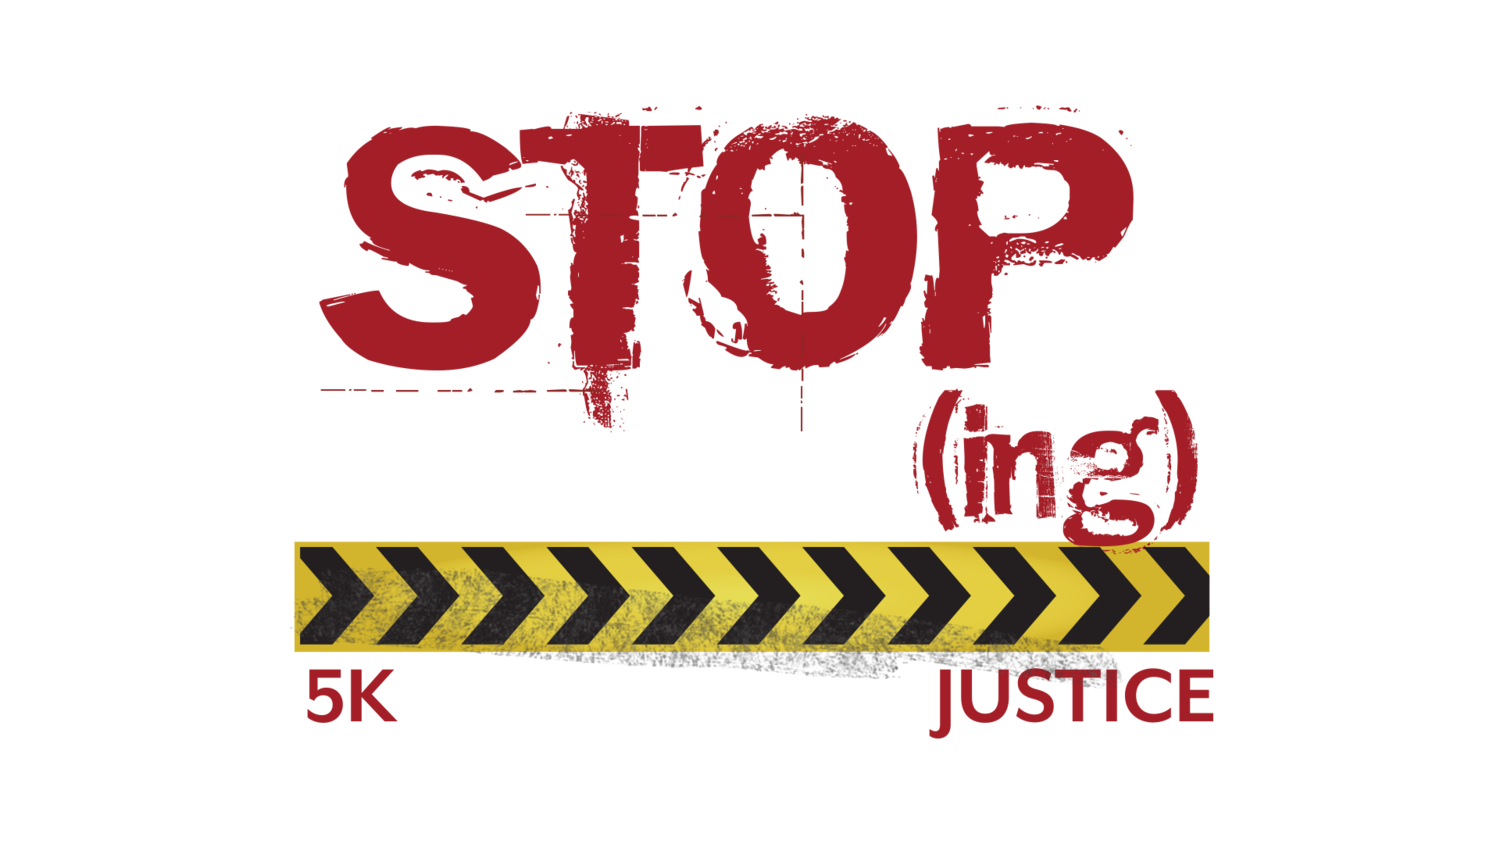 Stop the Trafficking logo